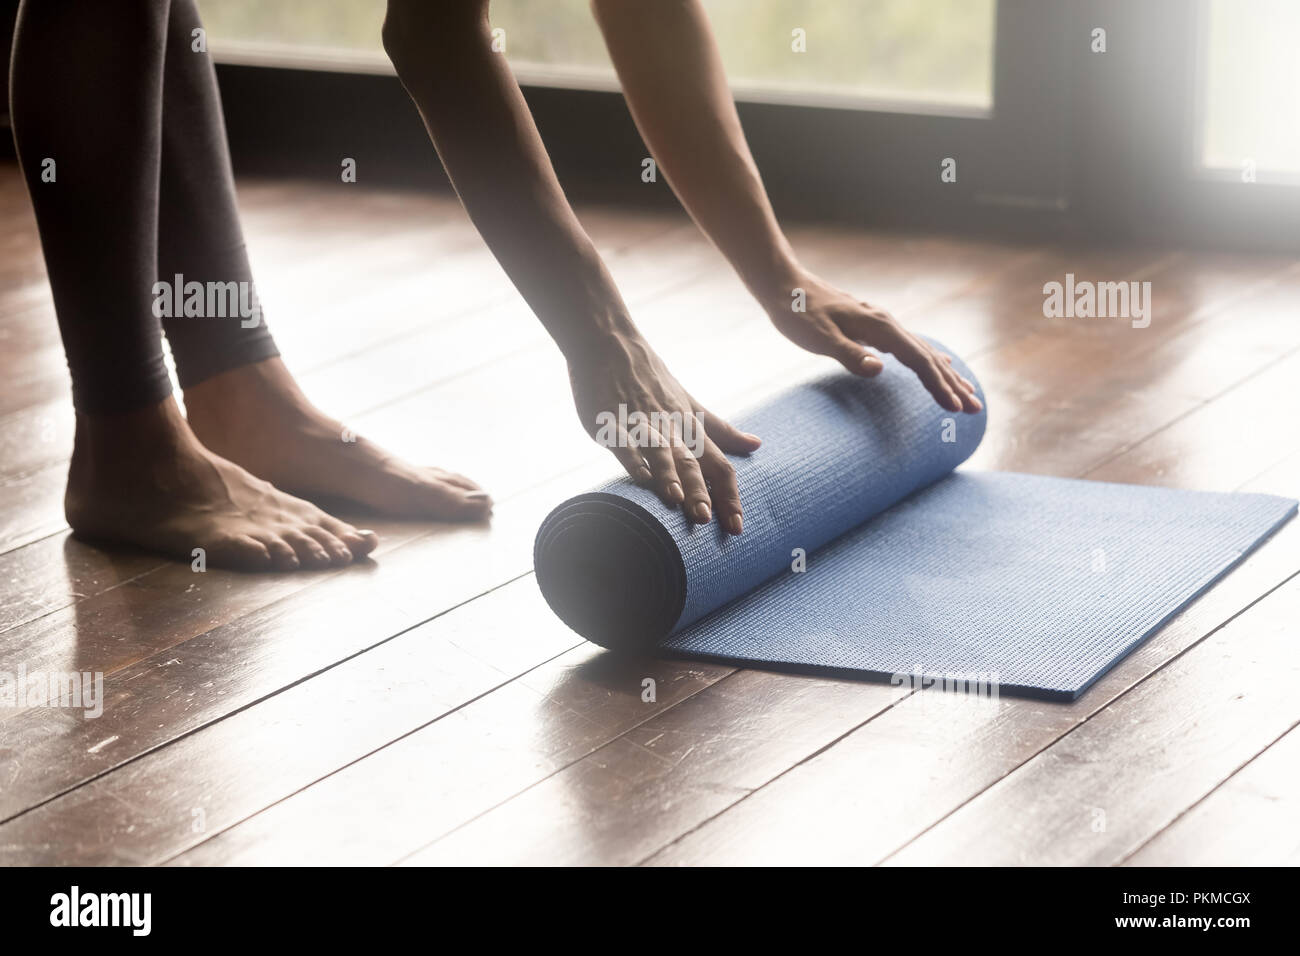 Mindful meditation or fitness session at home concept - Stock Image